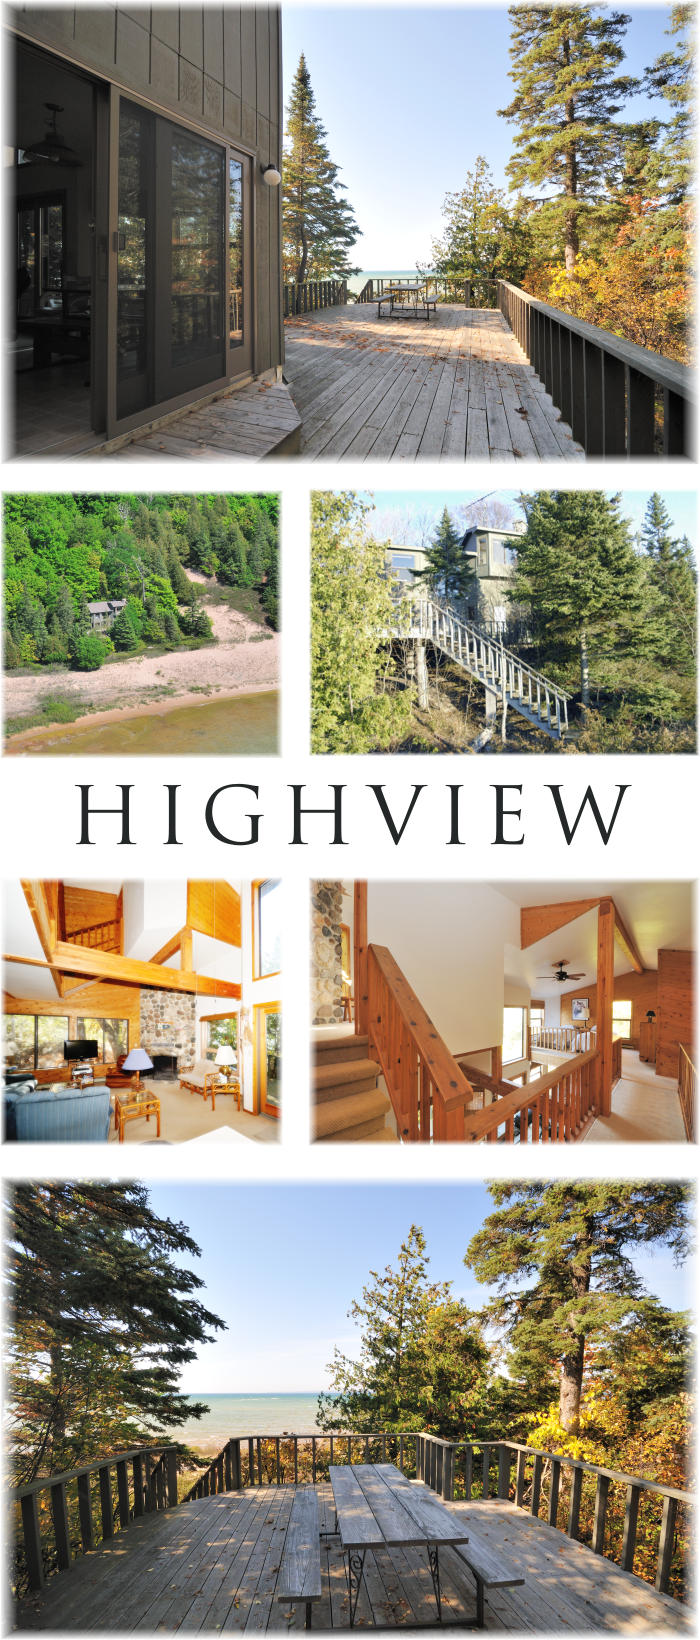 Beachfront House For Rent - Highview - View of High Island from large deck